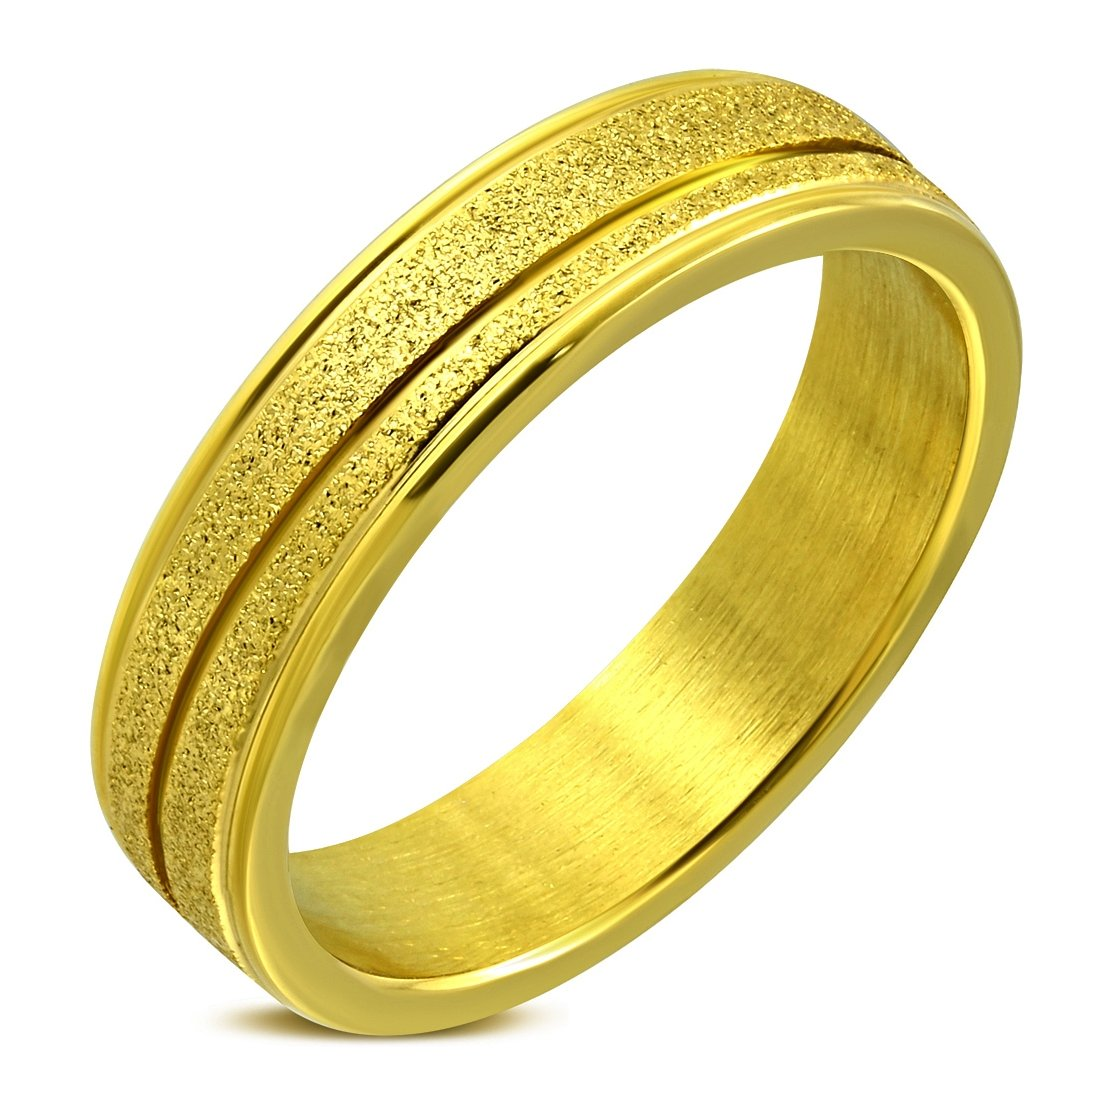 Stainless Steel Gold Color Plated Sandblasted Diagonal Grooved Step-Edge Half-Round Wedding Band Ring